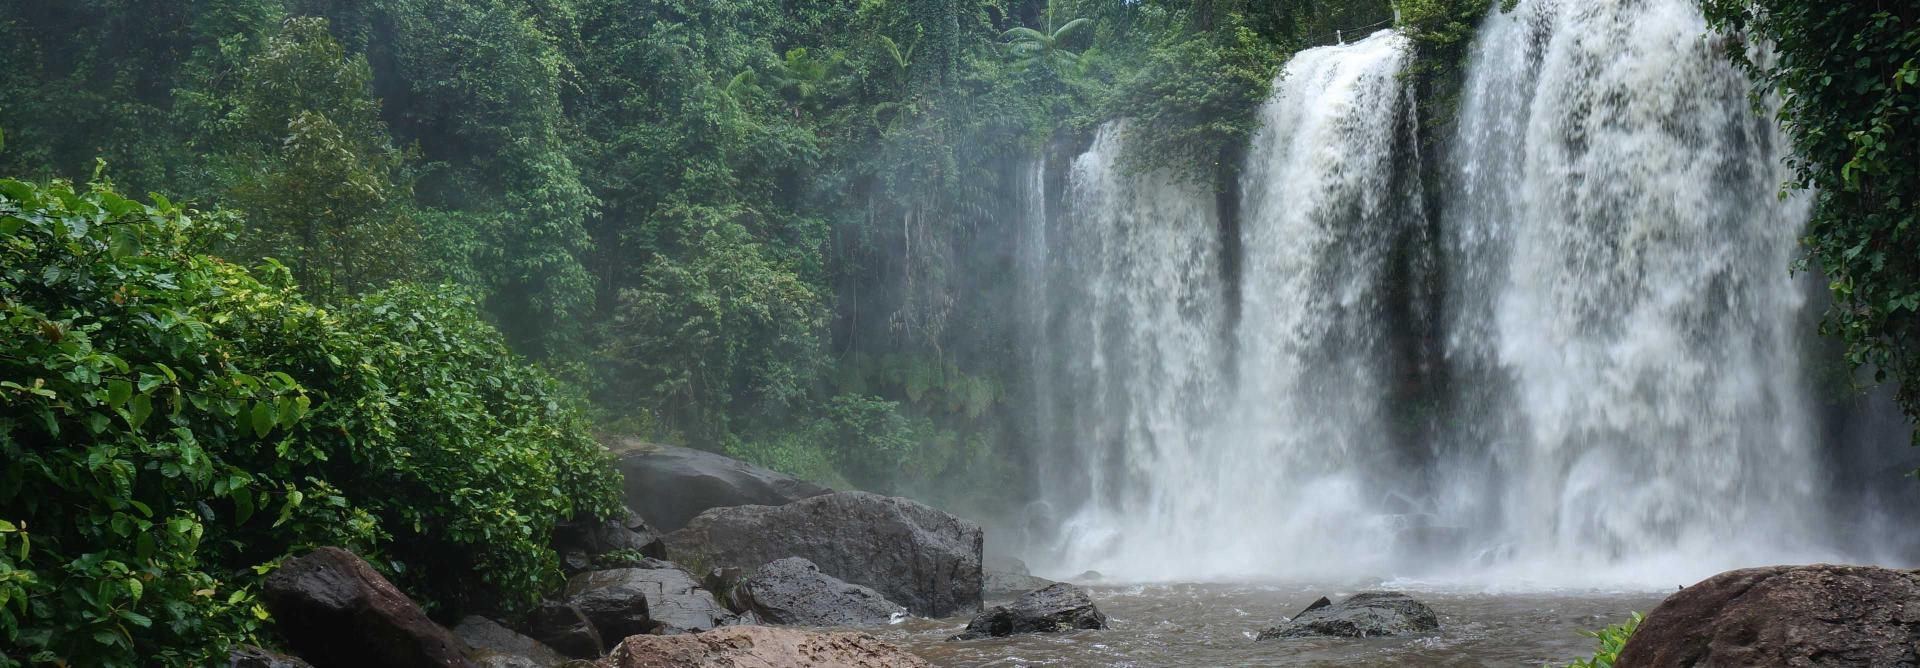 Phnom Kulen waterfall in Cambodia